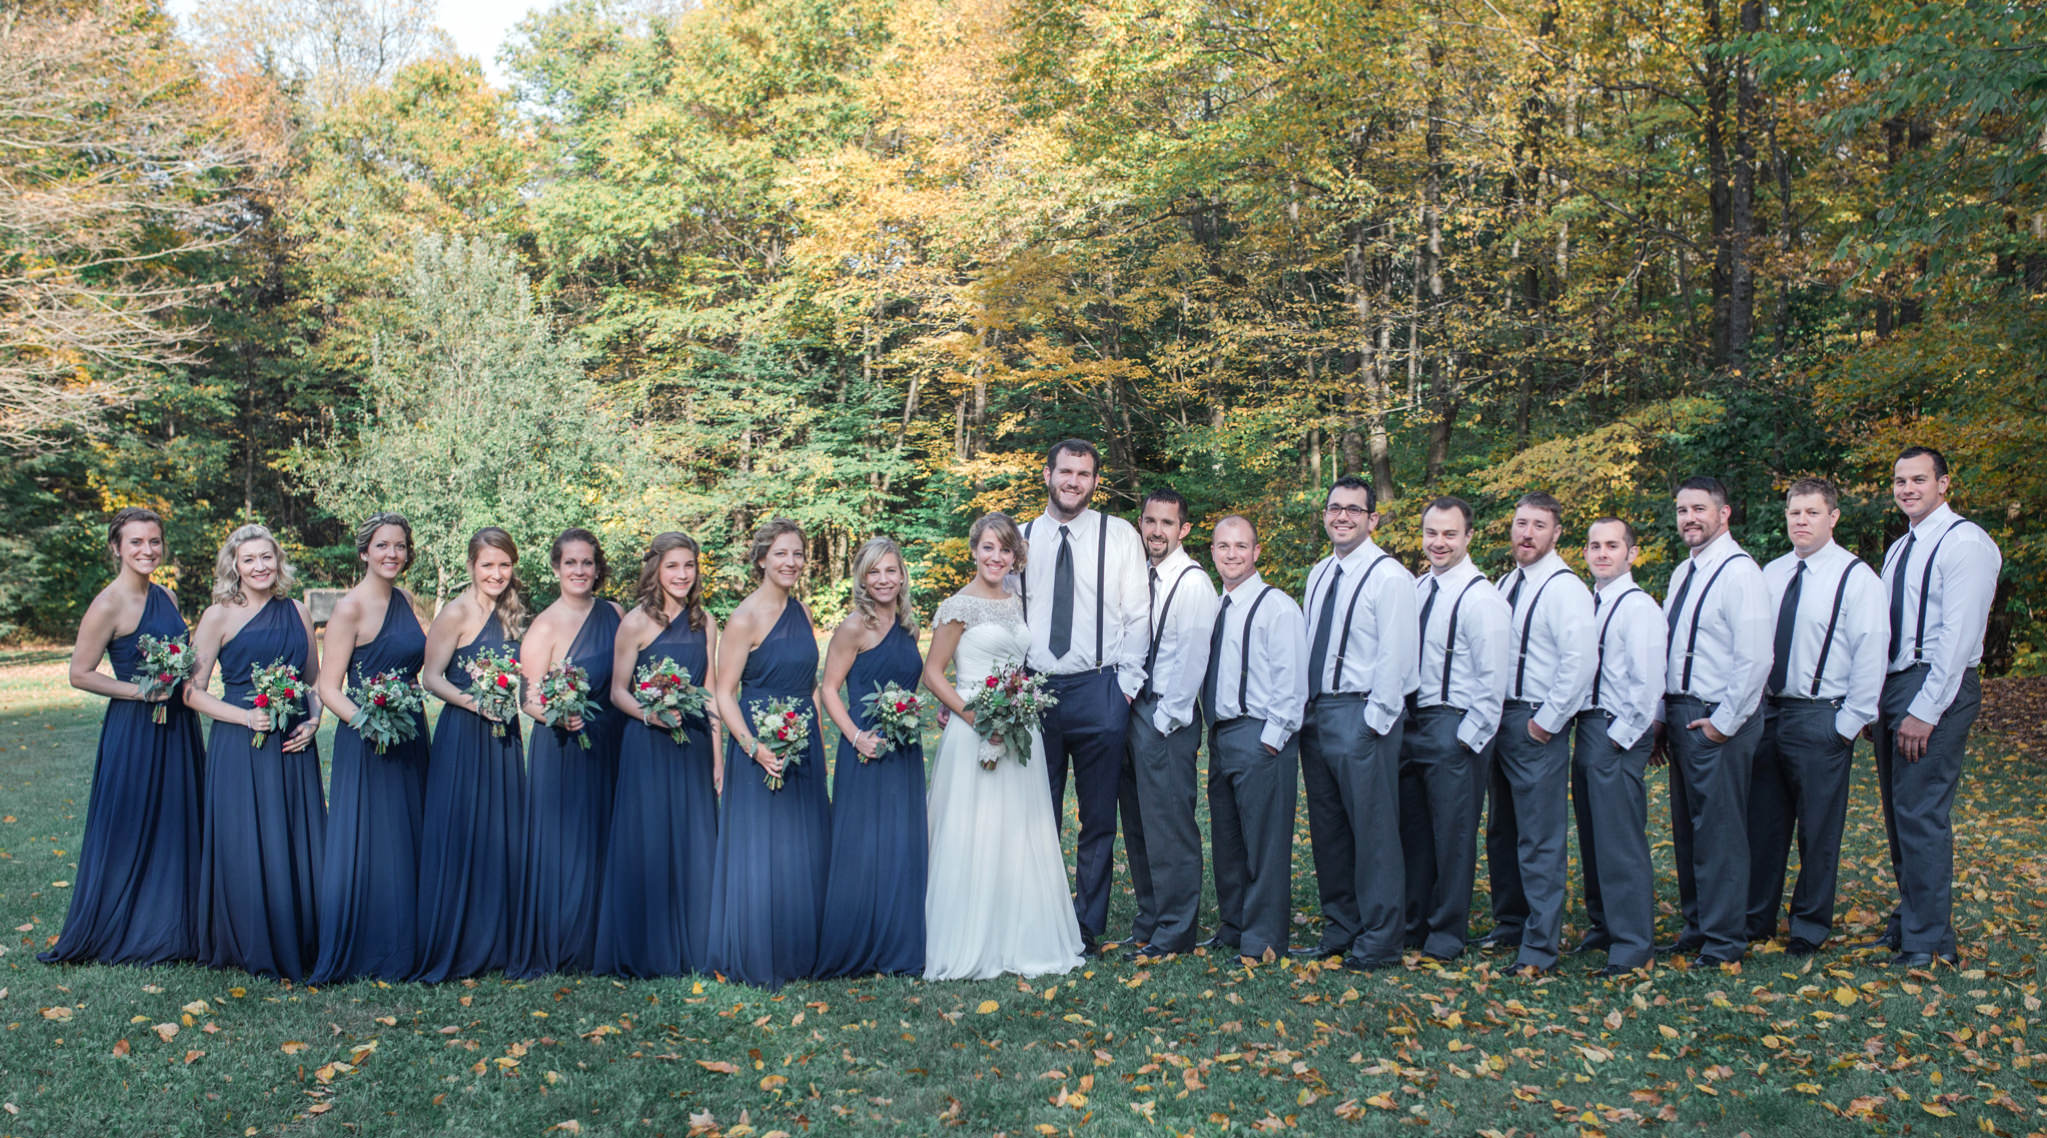 State College Ebensburg PA Fall Wedding photo (37).jpg